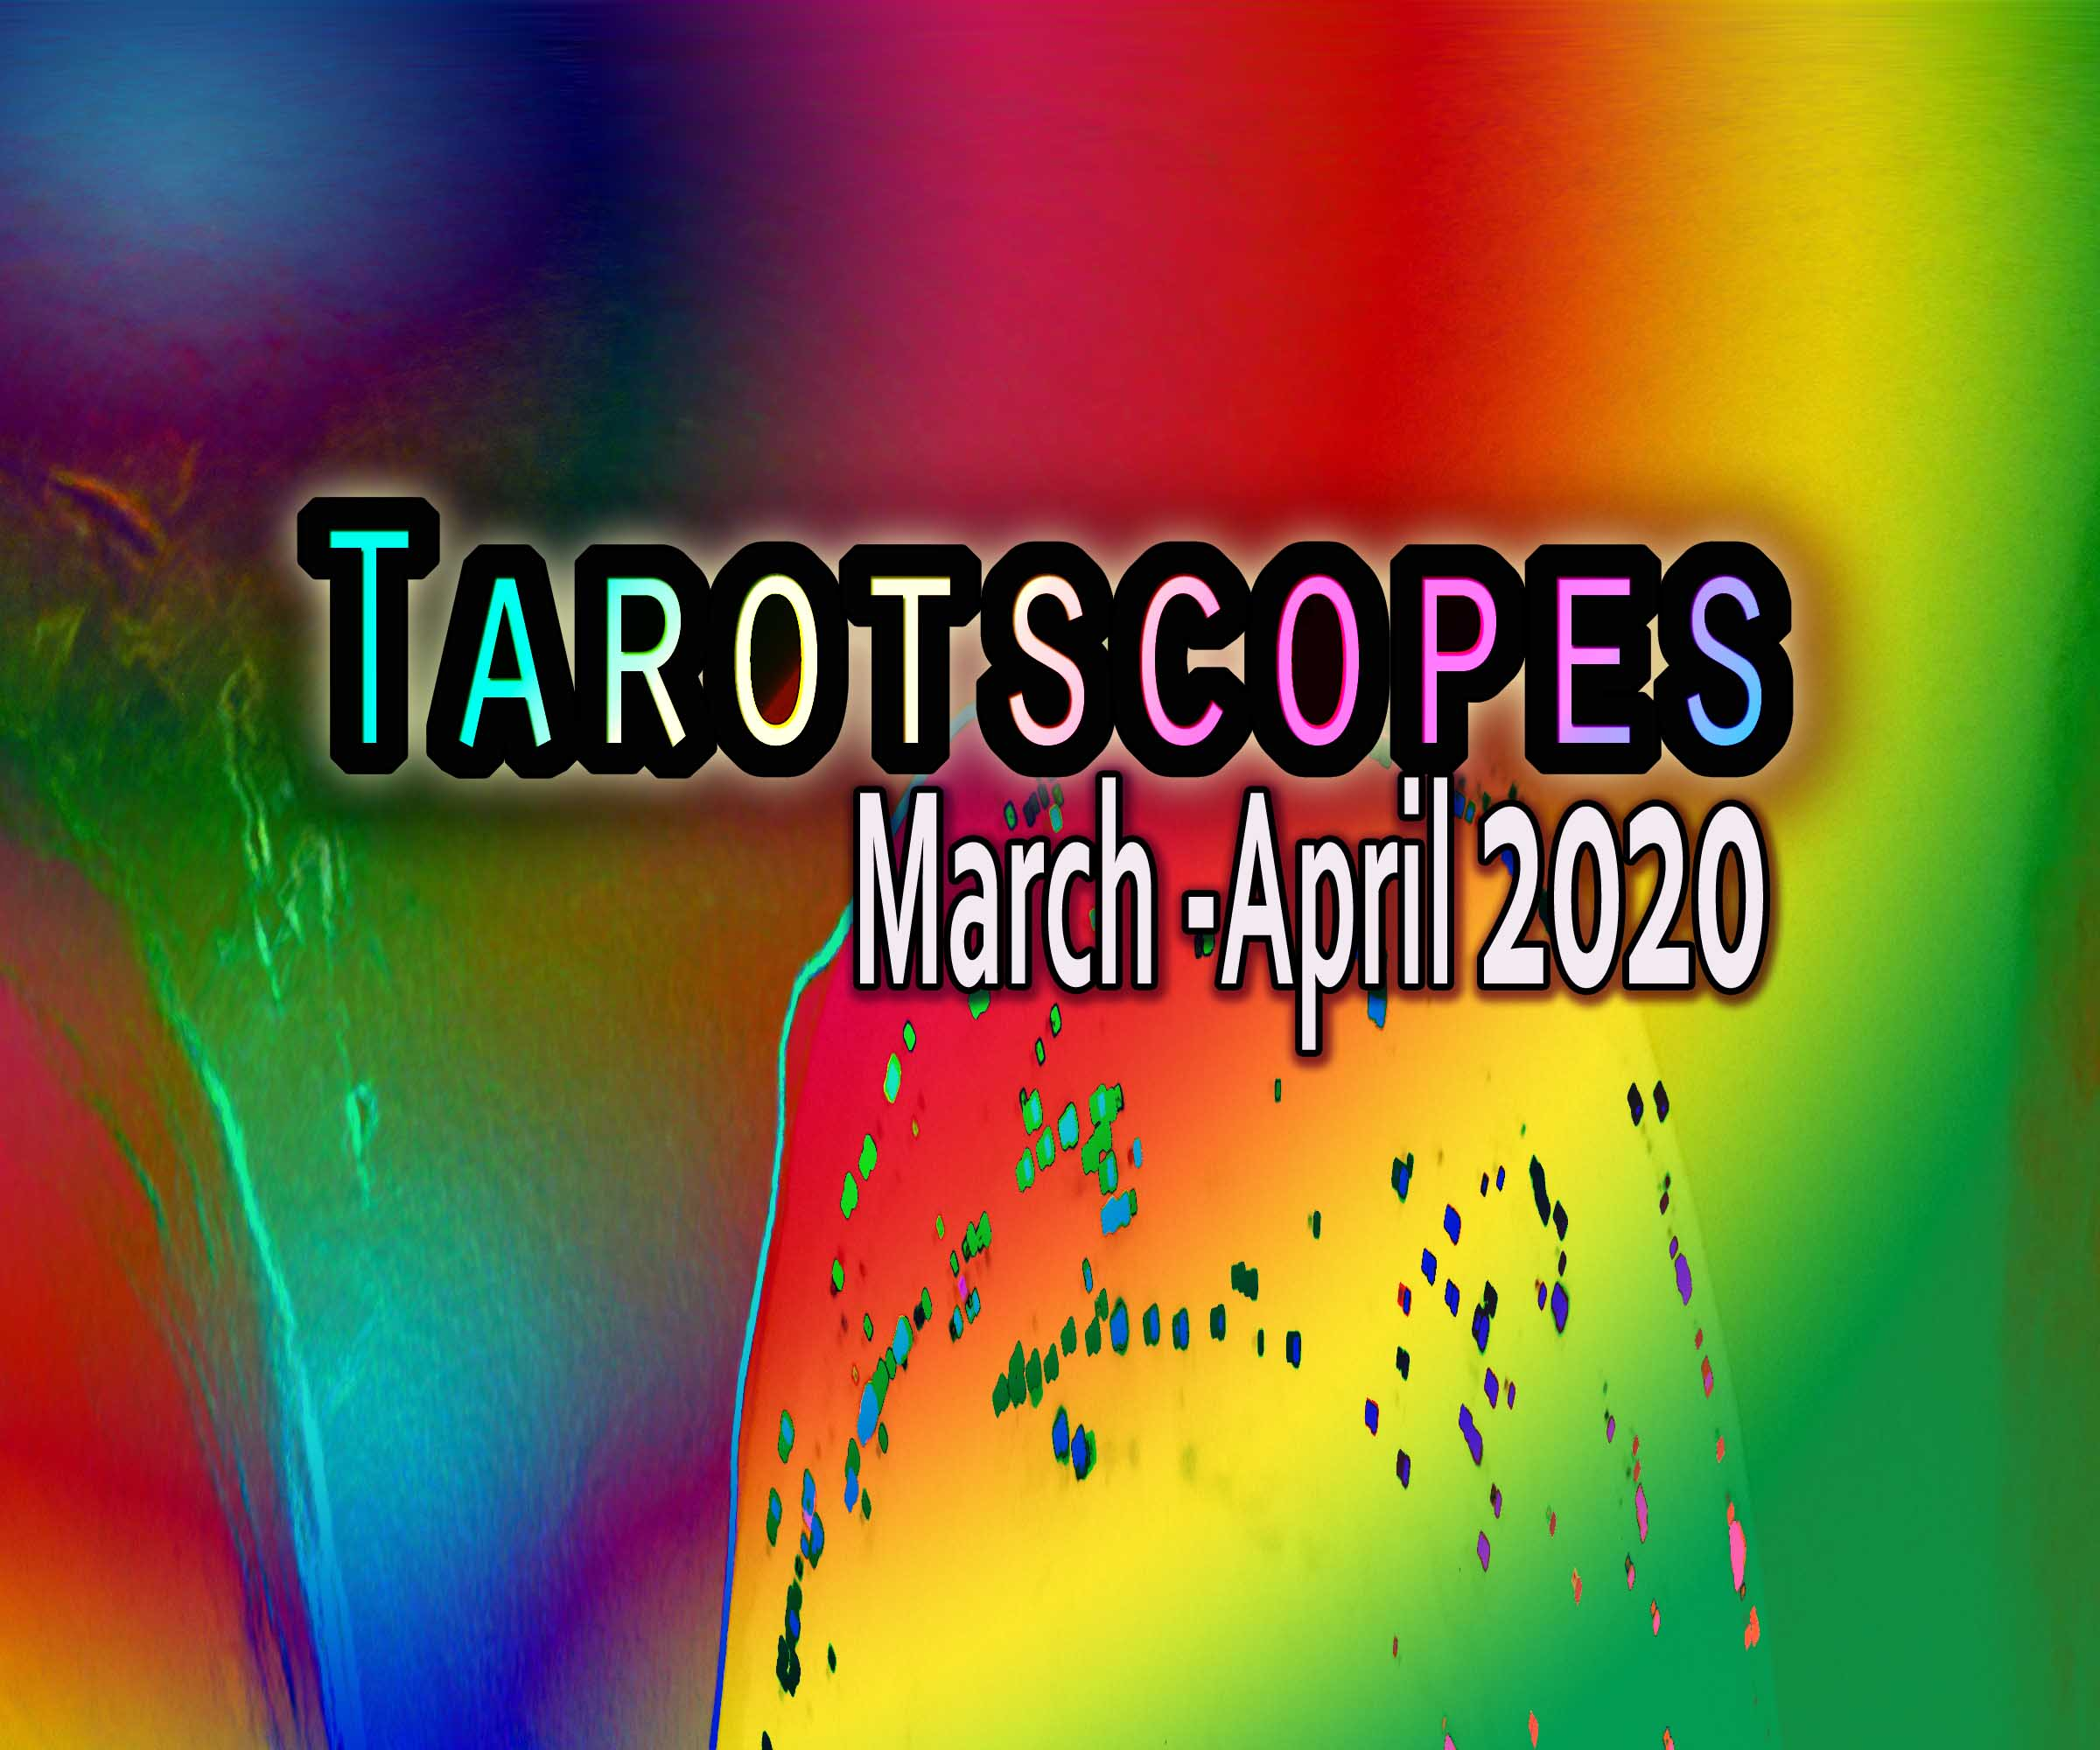 Tarotscopes for March-April 2020